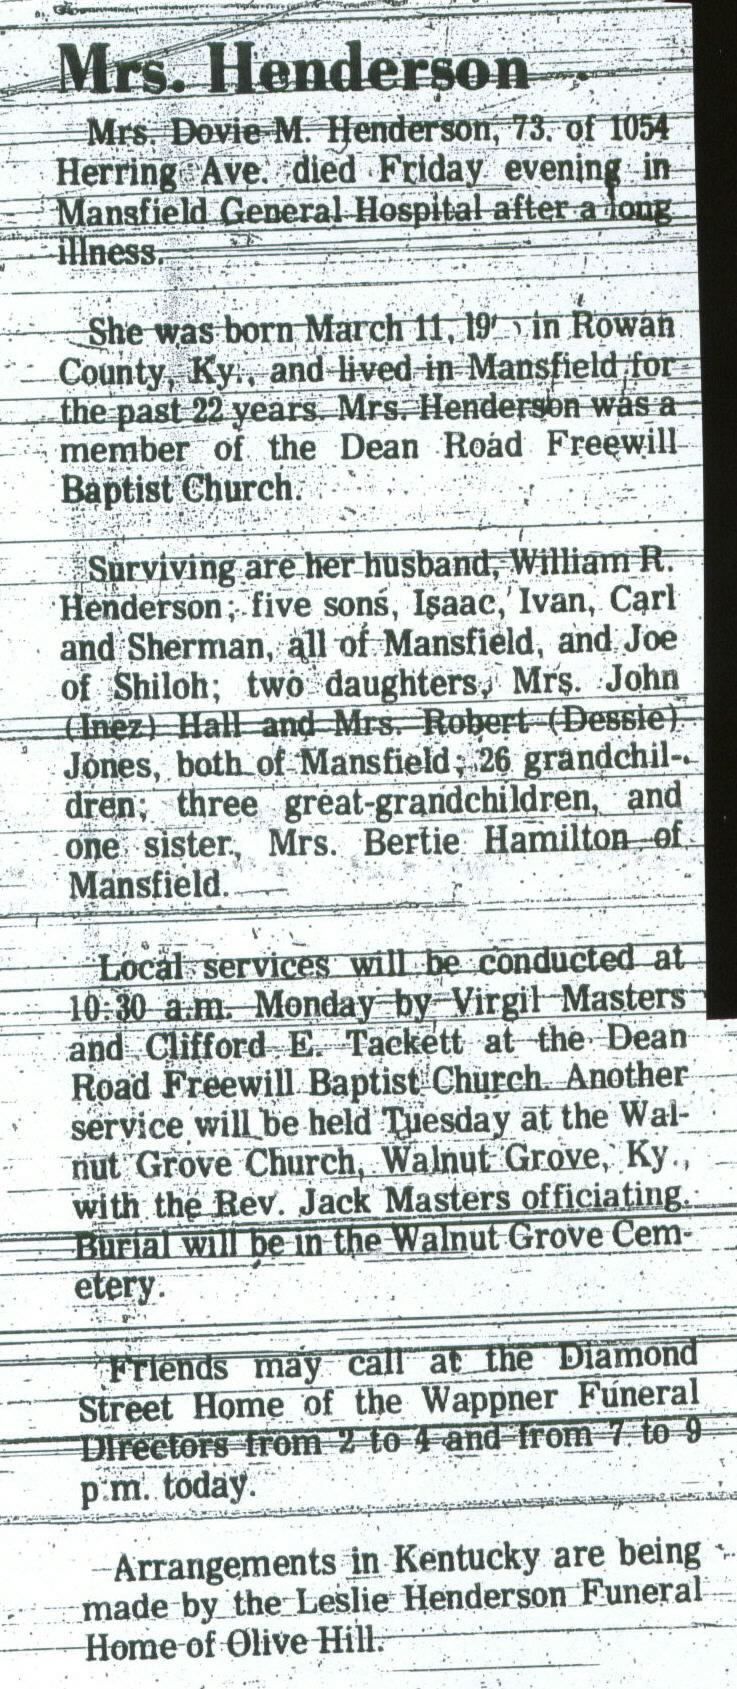 Obituaries & Death Notices: Ha - Hl